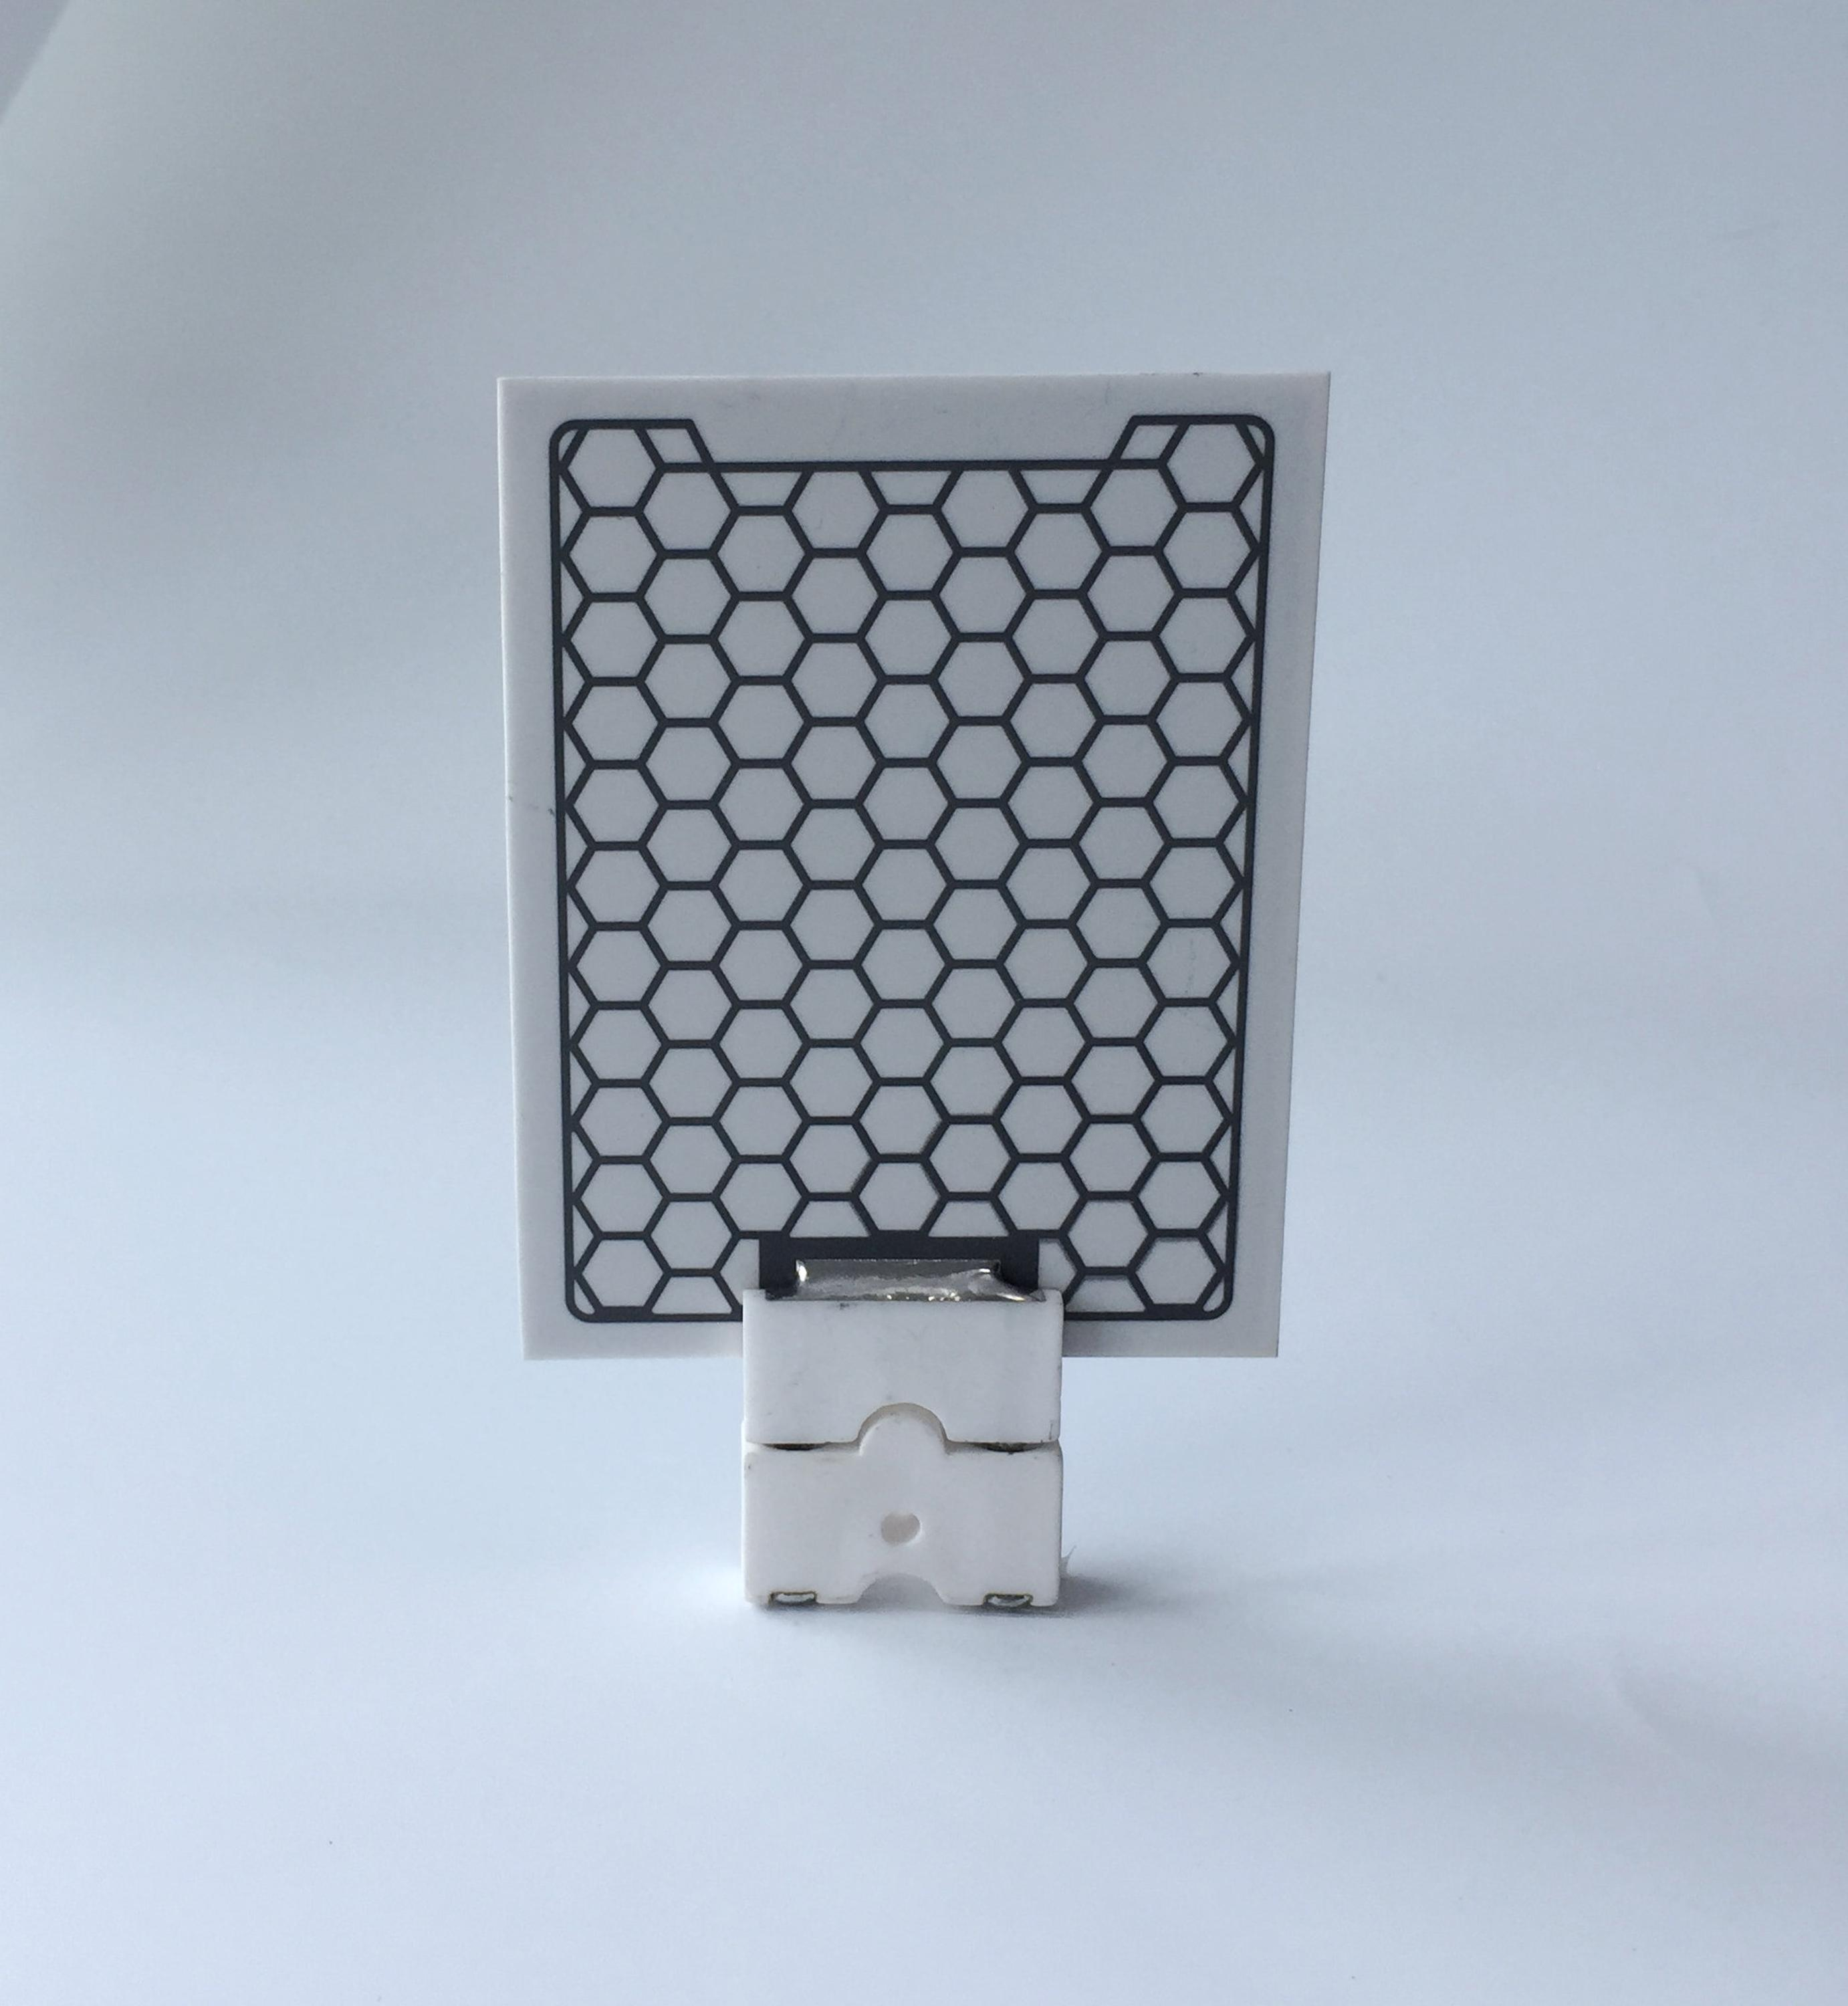 5g Longlife Ozone Plaques A891